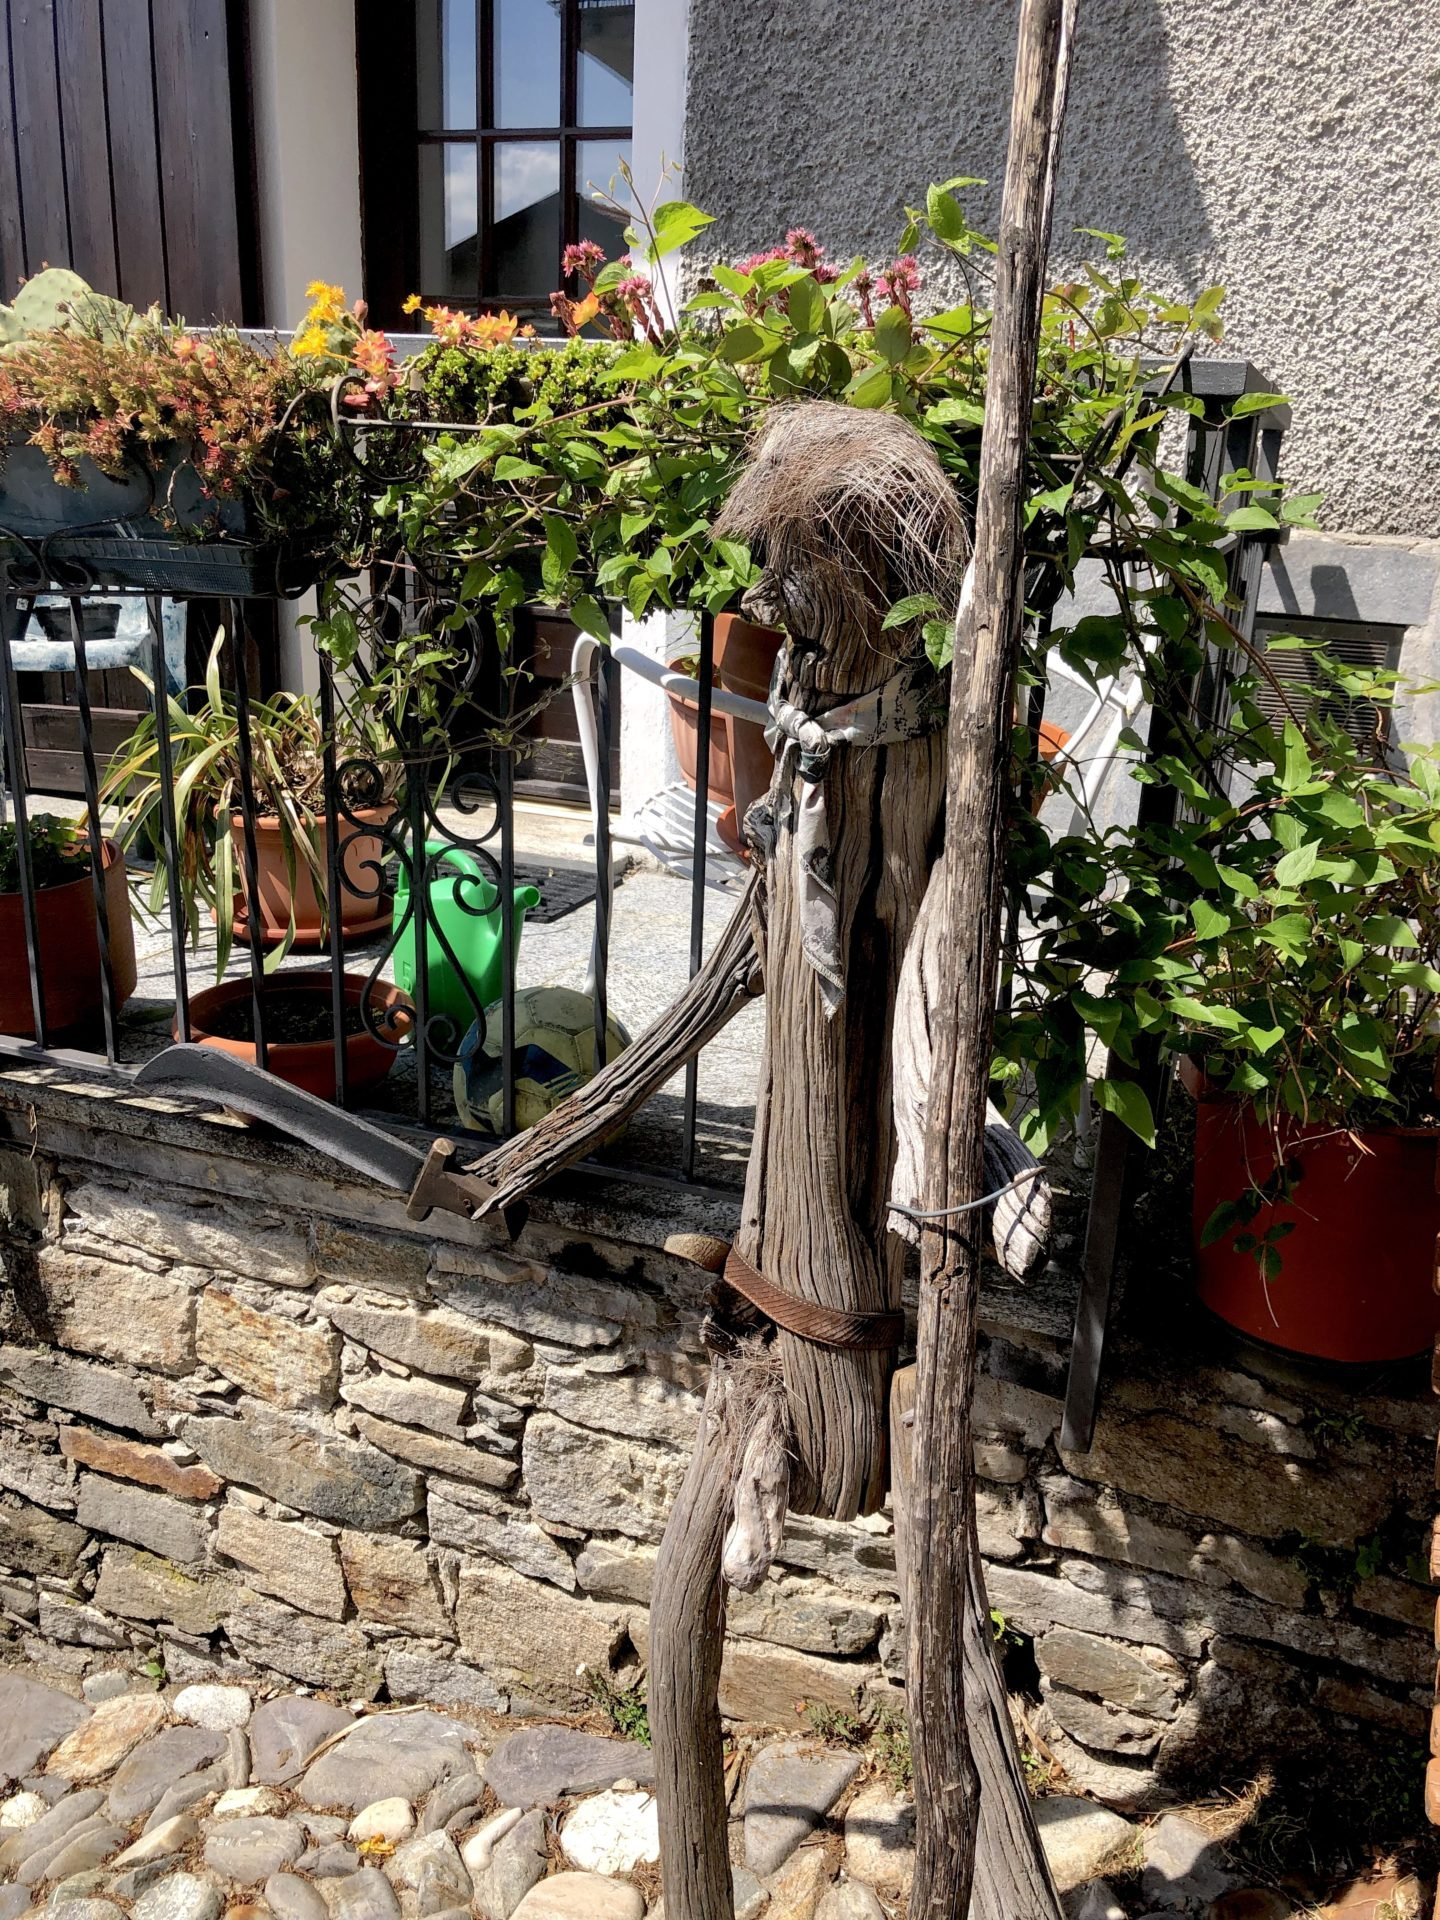 We had a giggle at some of the wooden men of Musignano!